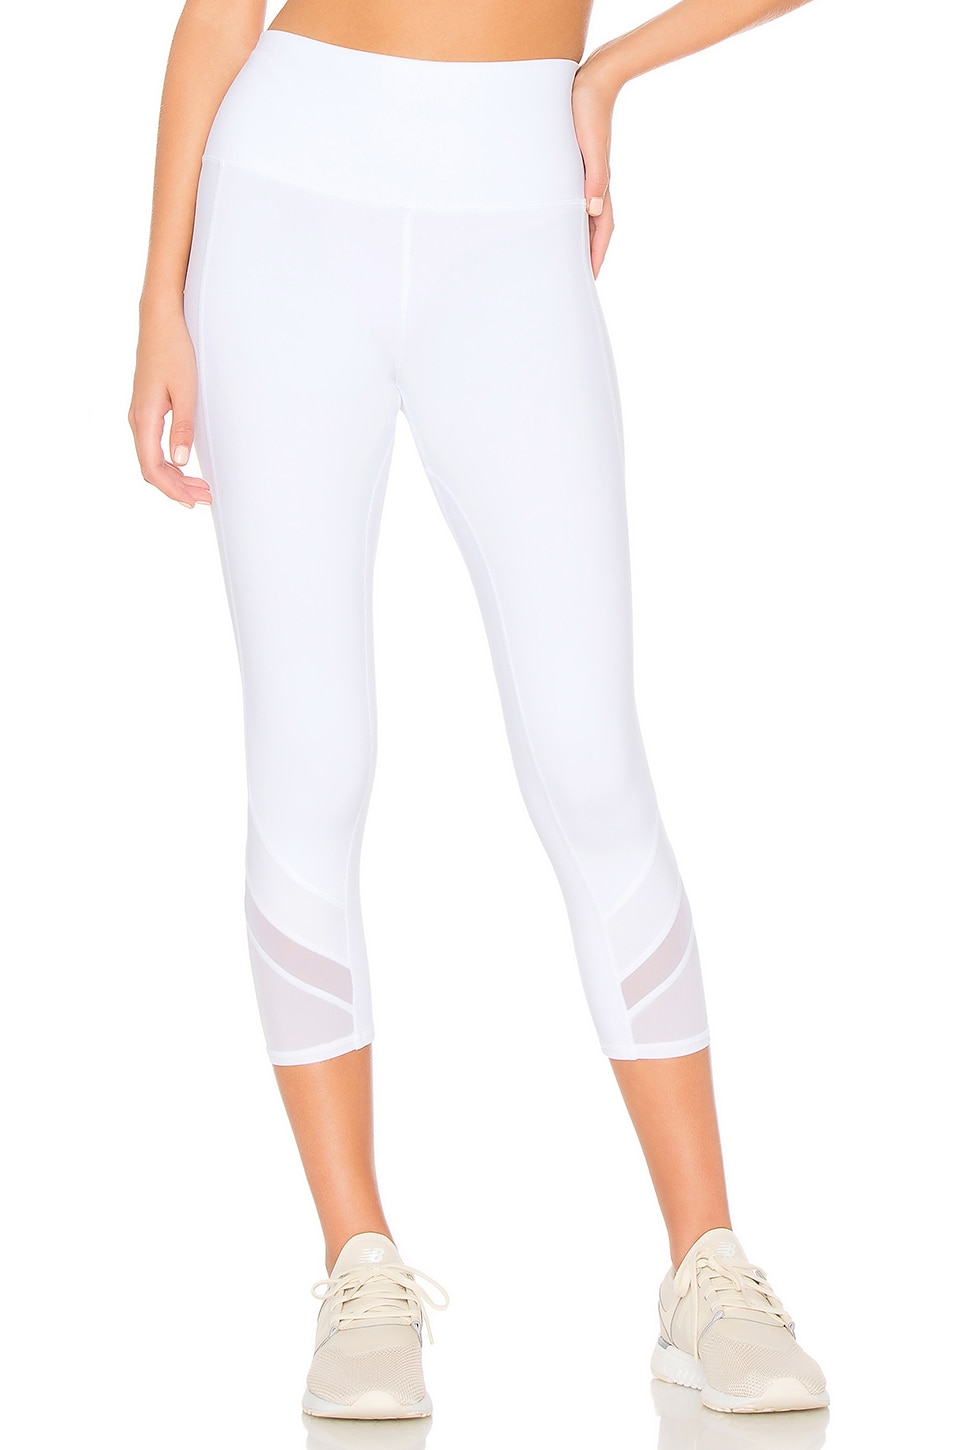 alo High Waist Elevate Capri Legging in White